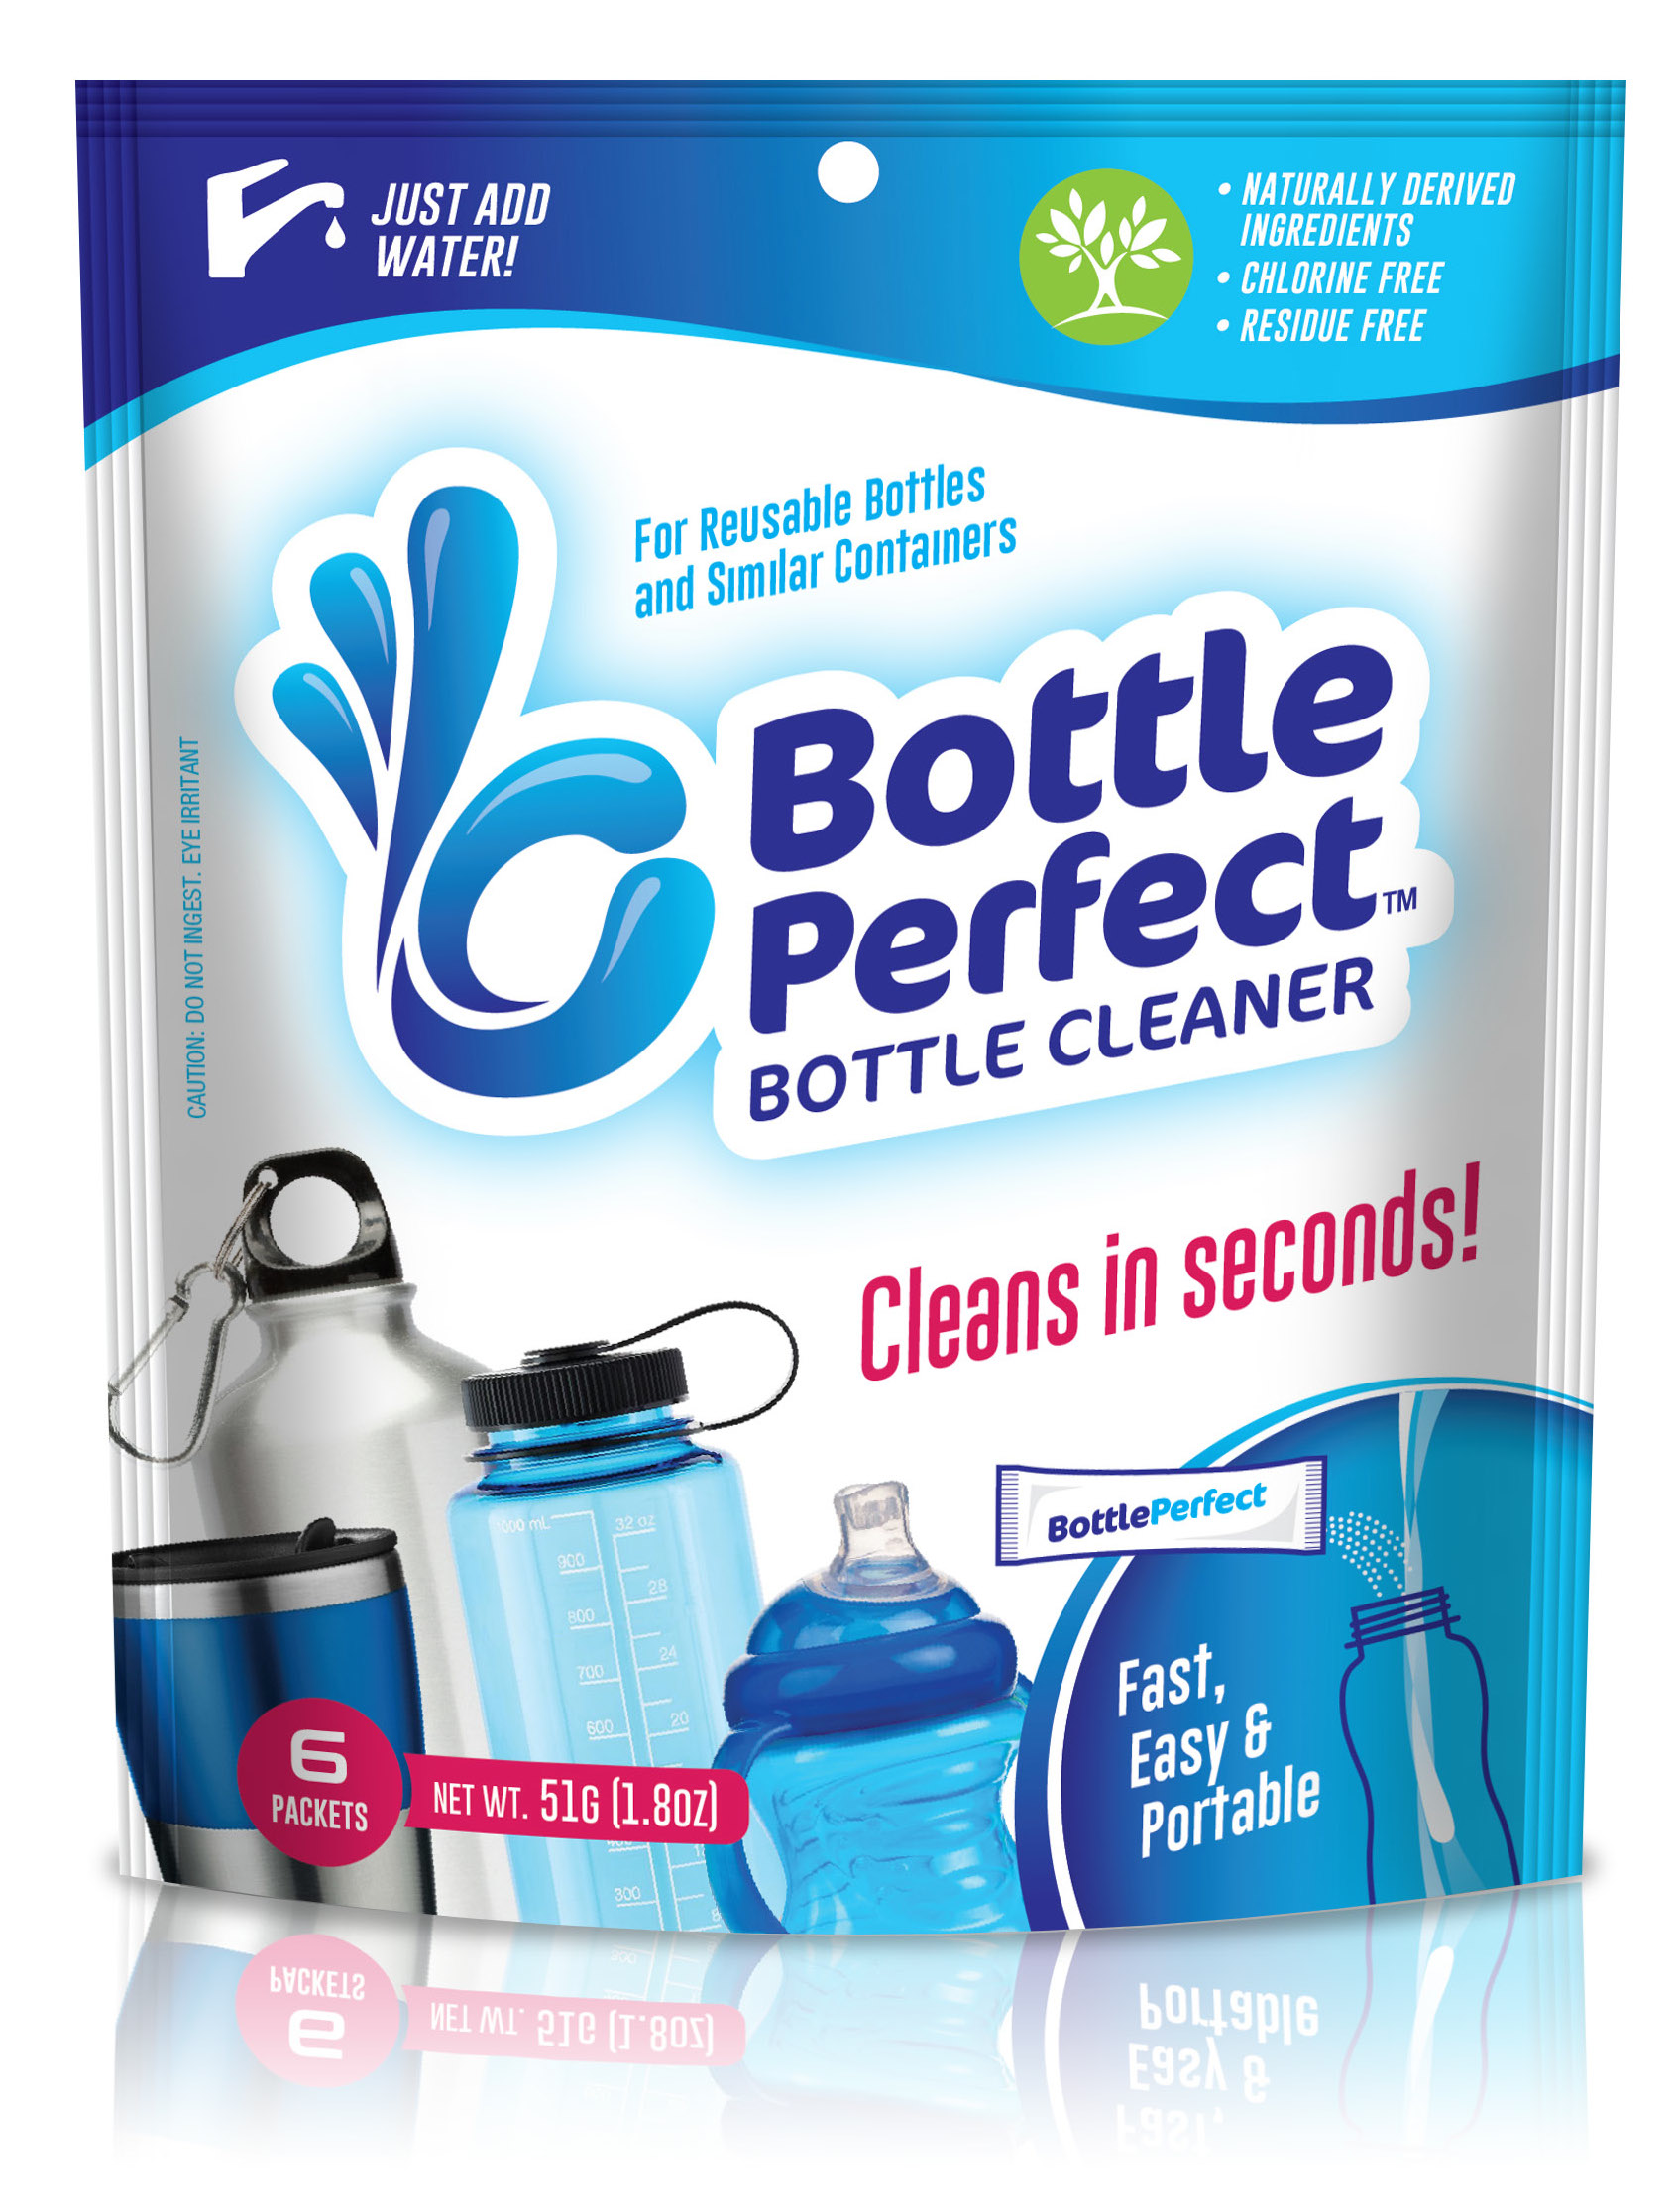 Cleans Bottles in Seconds! - Reusable bottles and similar containers can be difficult to clean. Our product, BottlePerfect, makes it easy to effectively clean anywhere, anytime. Removes stuck on stains, odors, and residues safely and effectively.